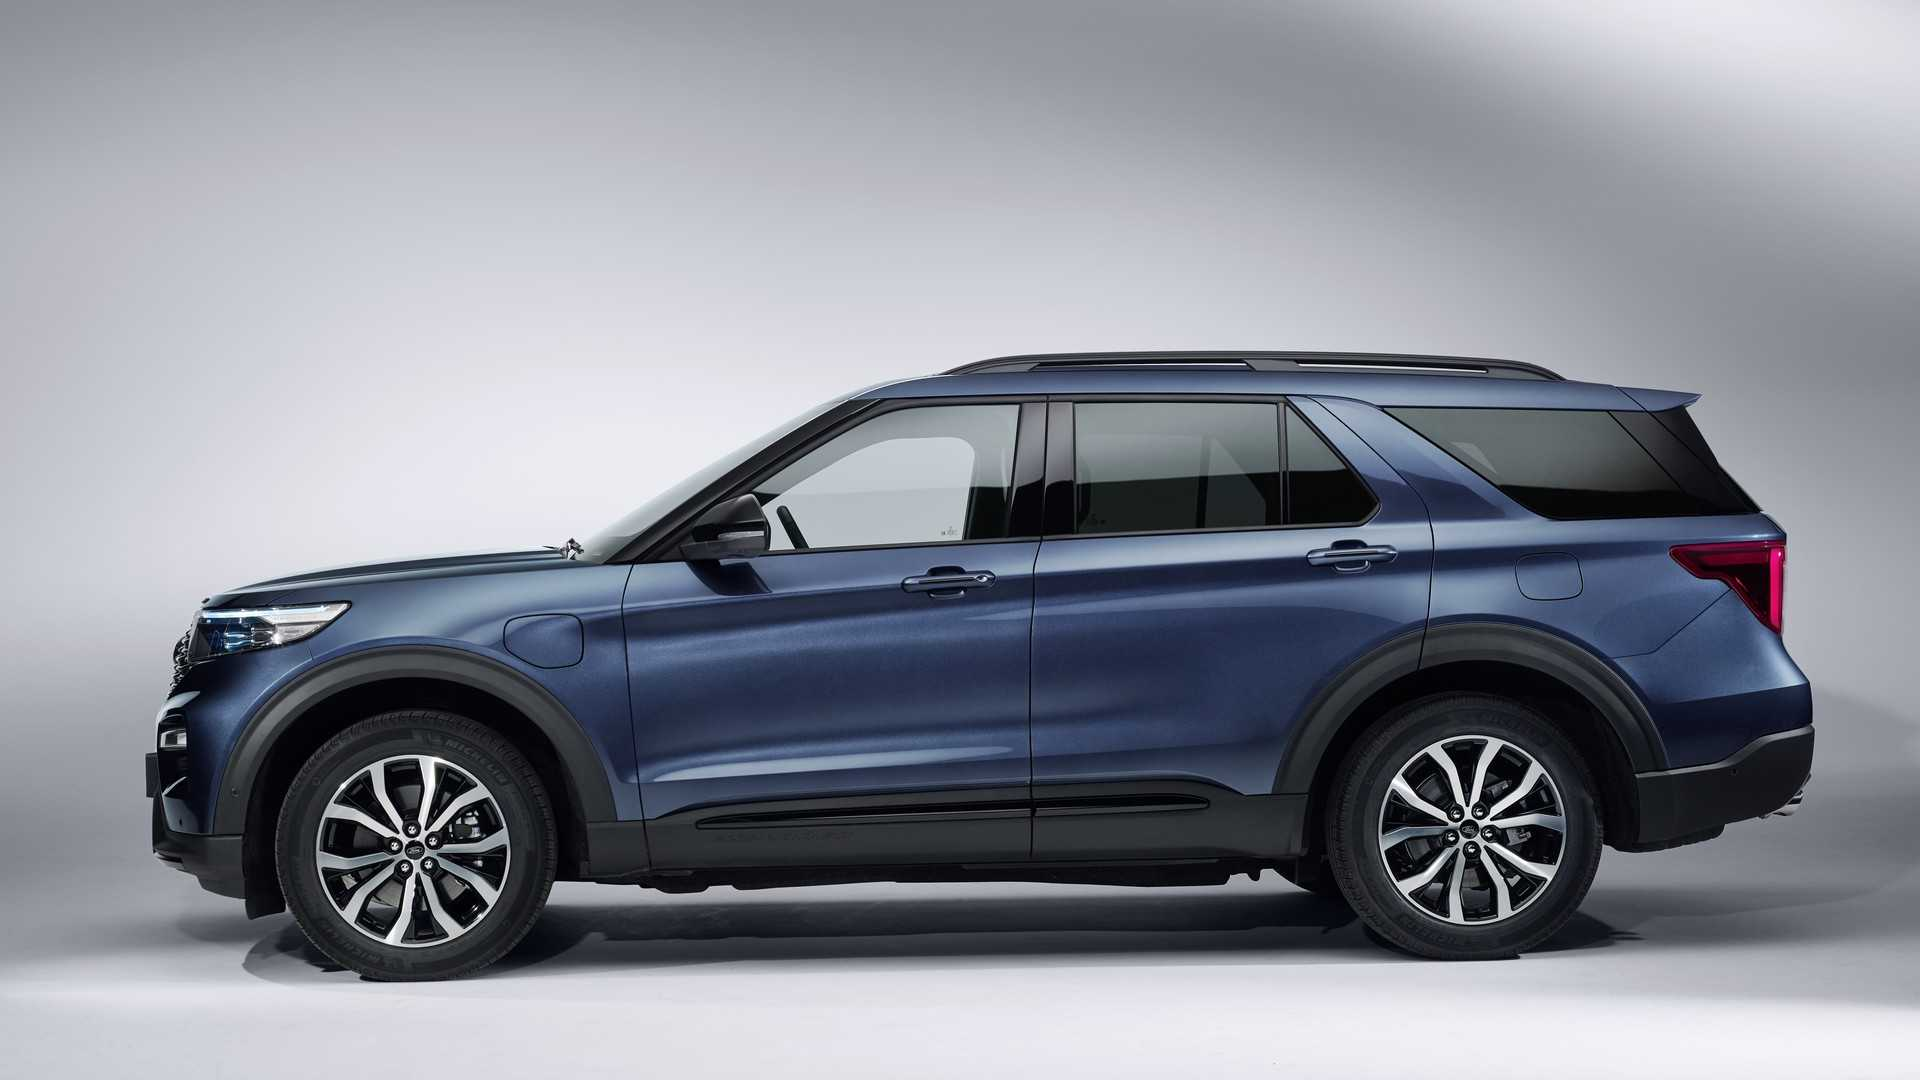 97 The Best 2020 The Ford Explorer Redesign